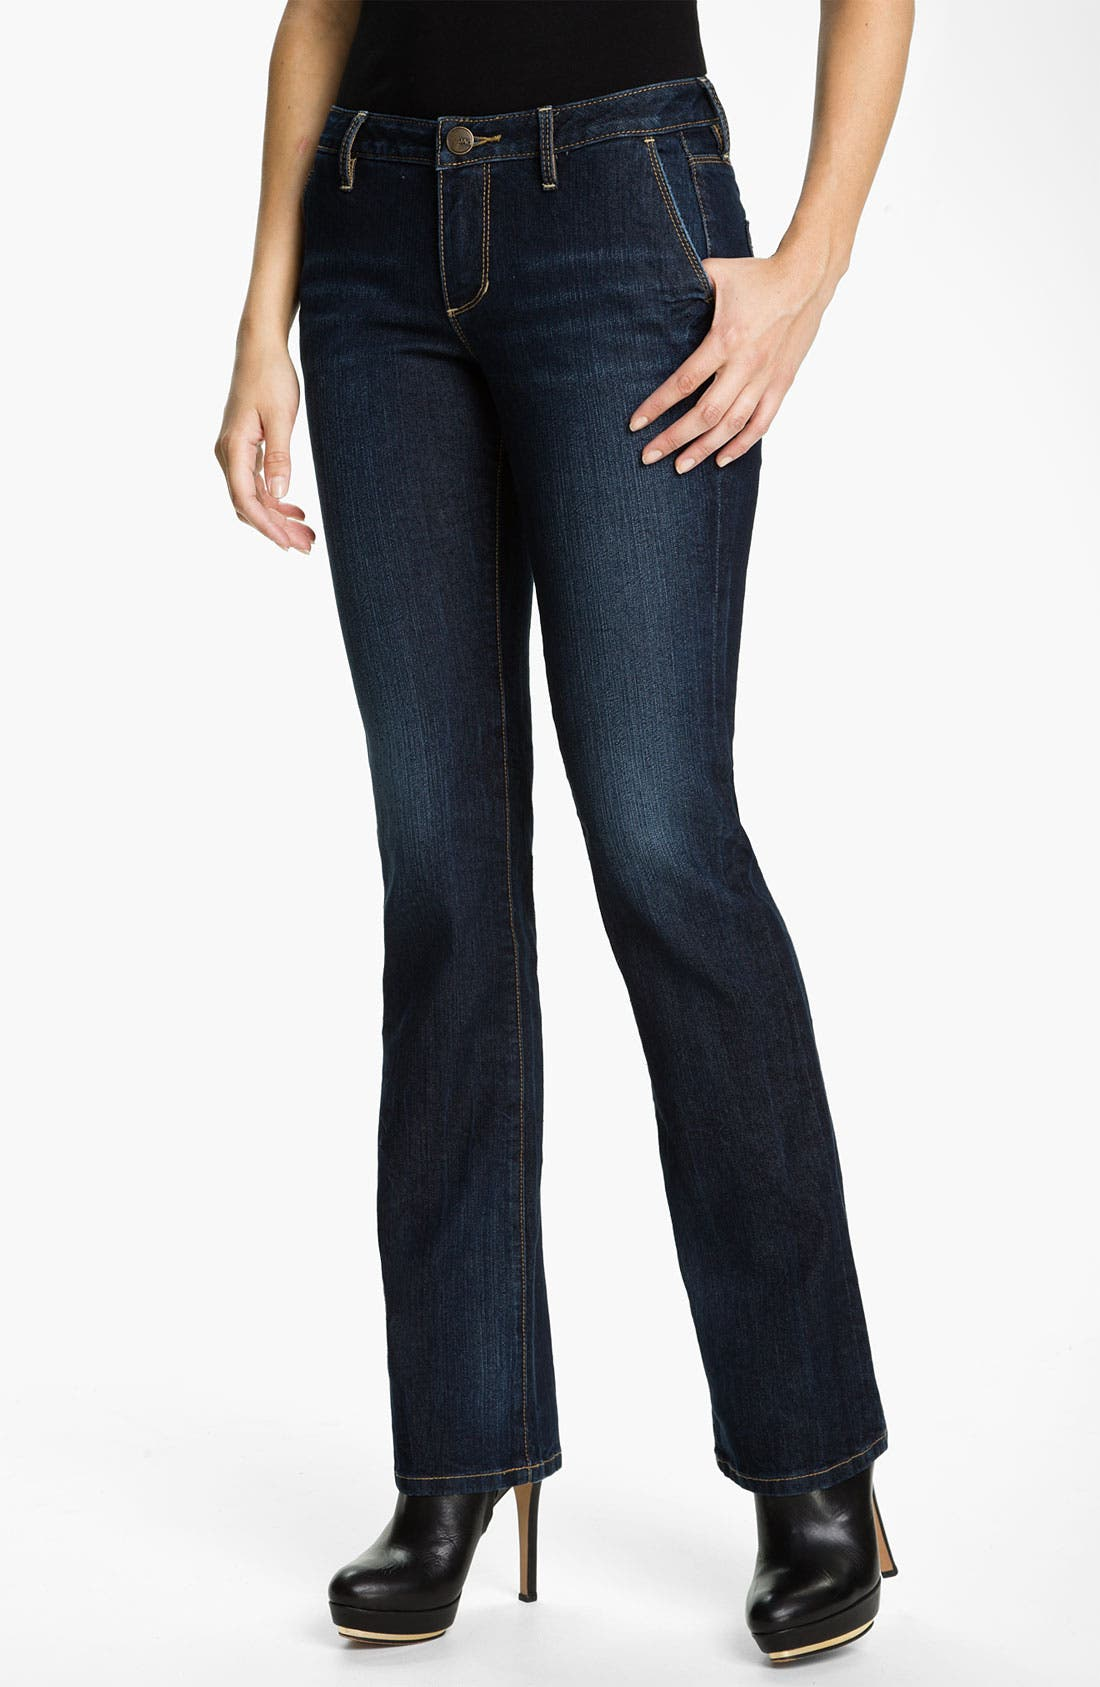 Main Image - Jag Jeans 'Virginia' Bootcut Stretch Jeans (Roswell) (Petite)